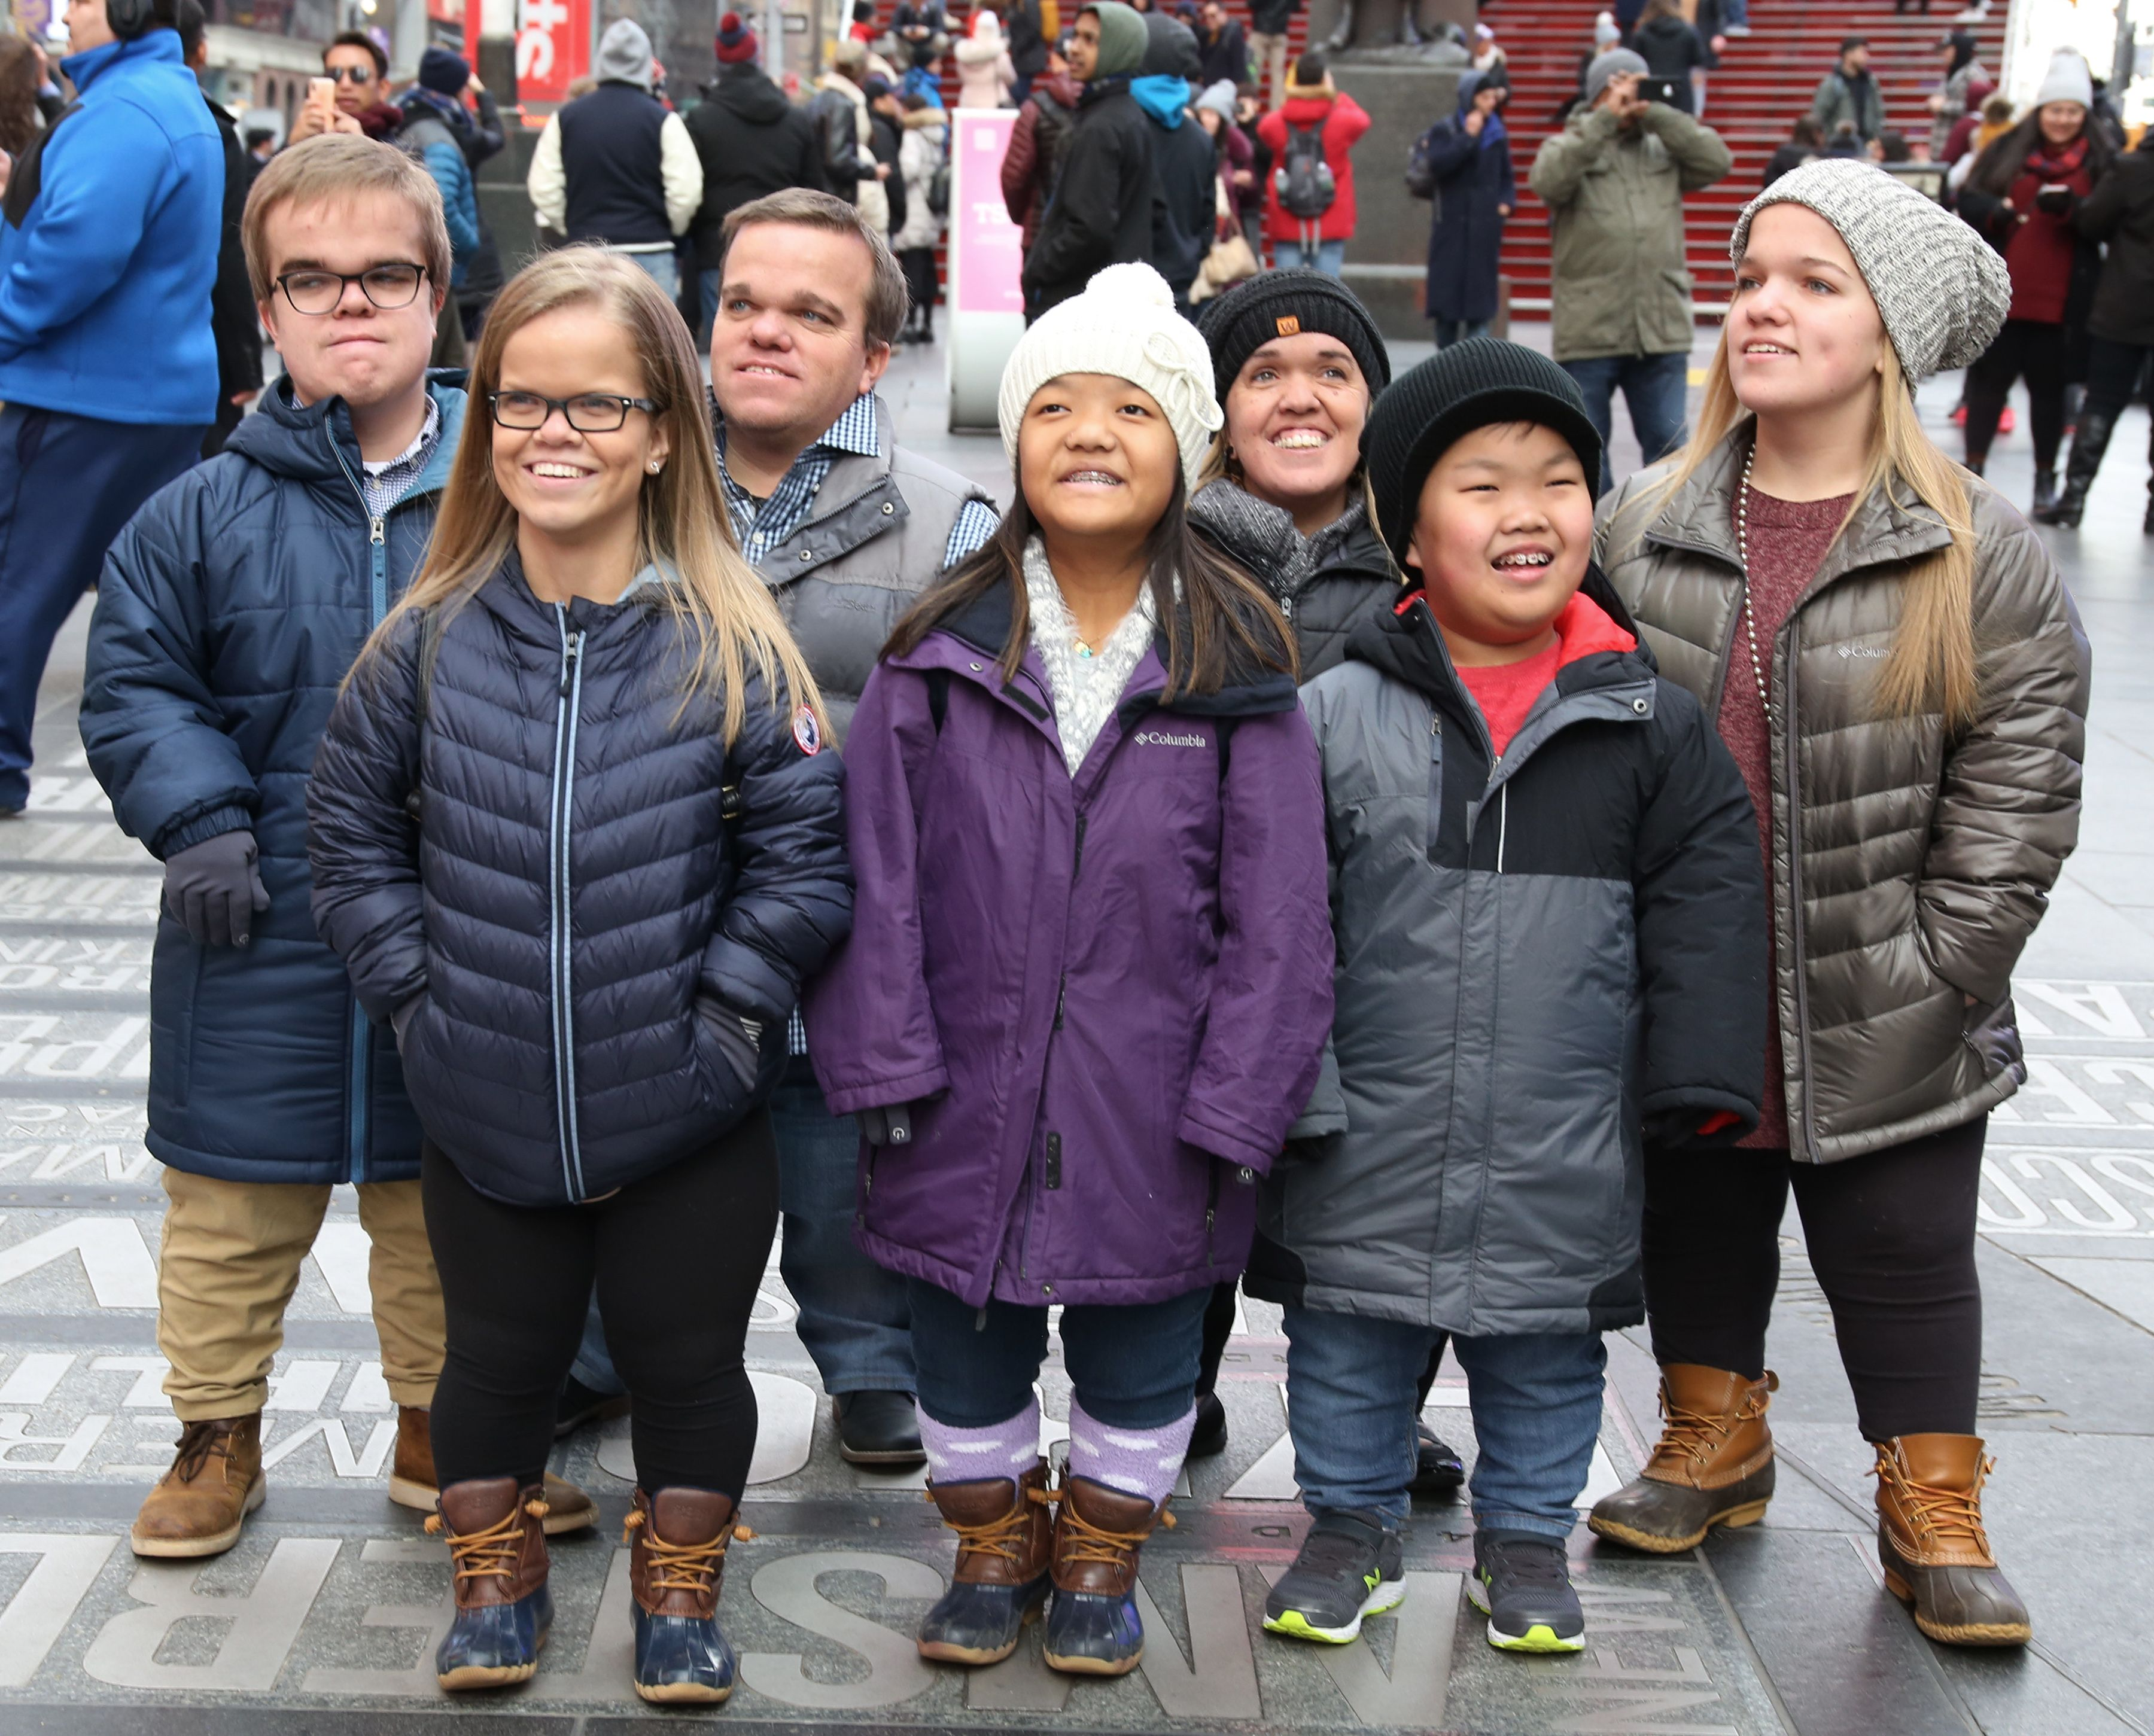 """The cast of TLC's """"7 Little Johnstons"""" filming a visit to Times Square on January 4, 2019 